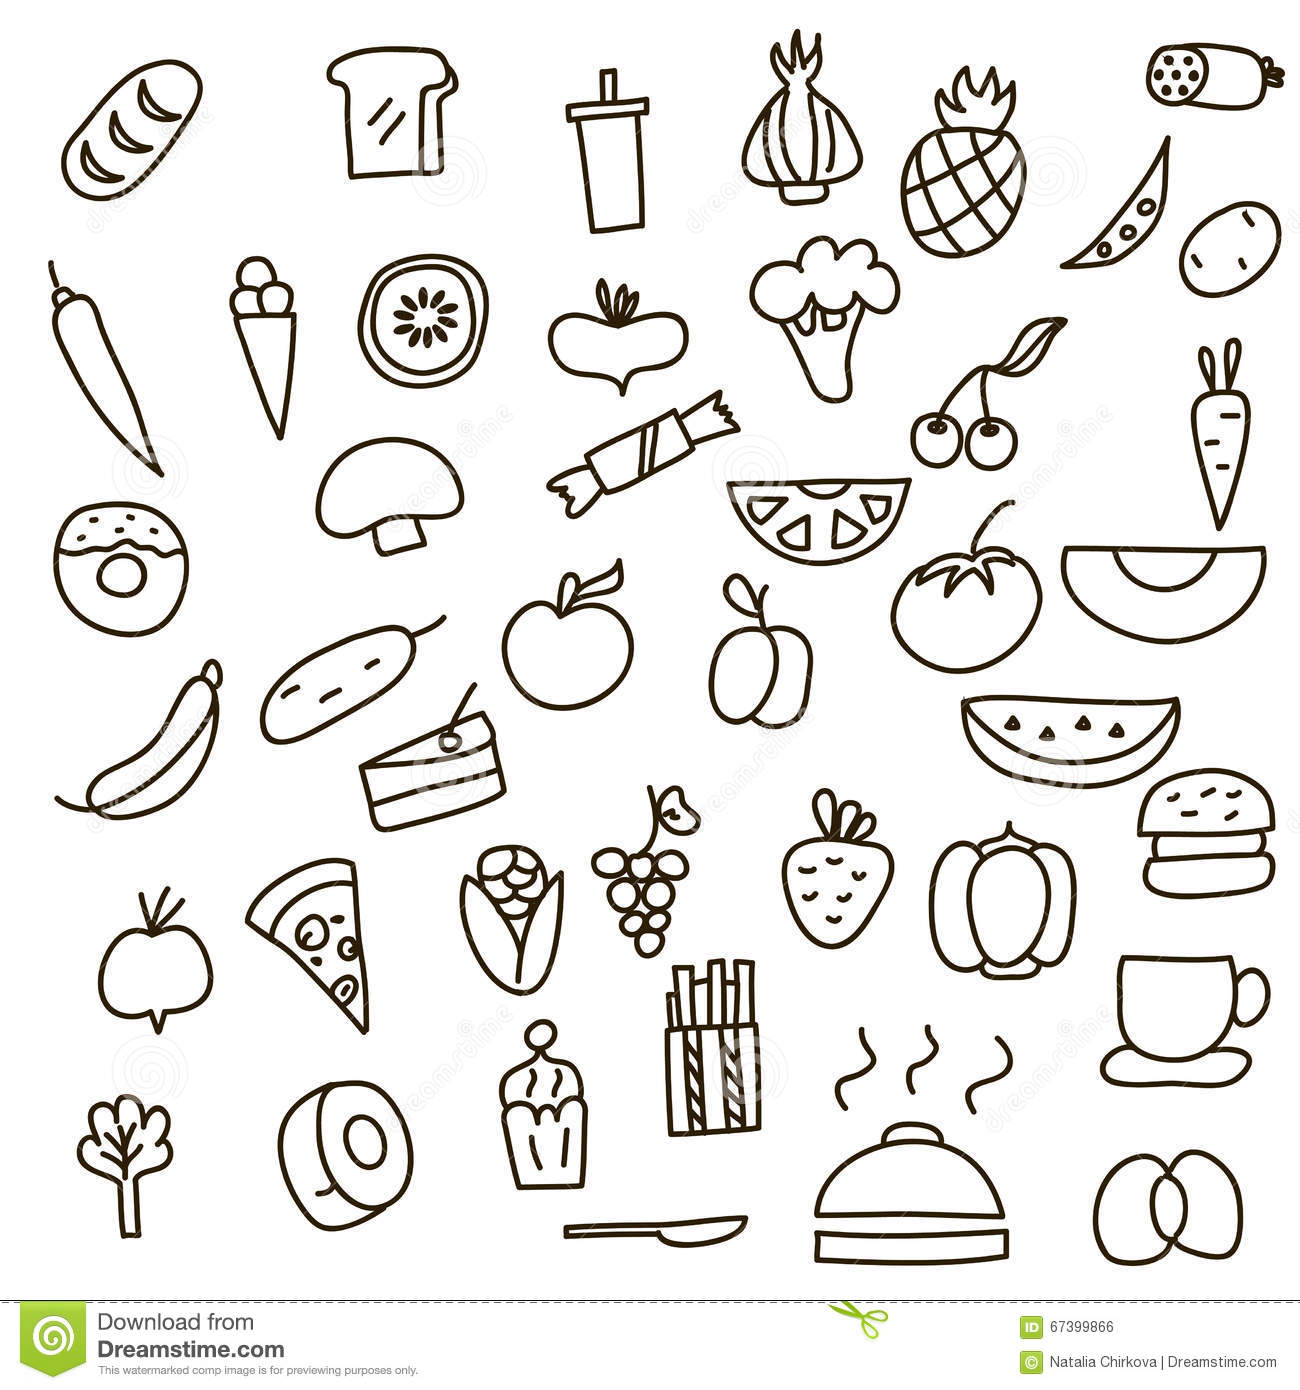 Icons Of Fruits Vegetables And Food A Hand Drawn Doodle